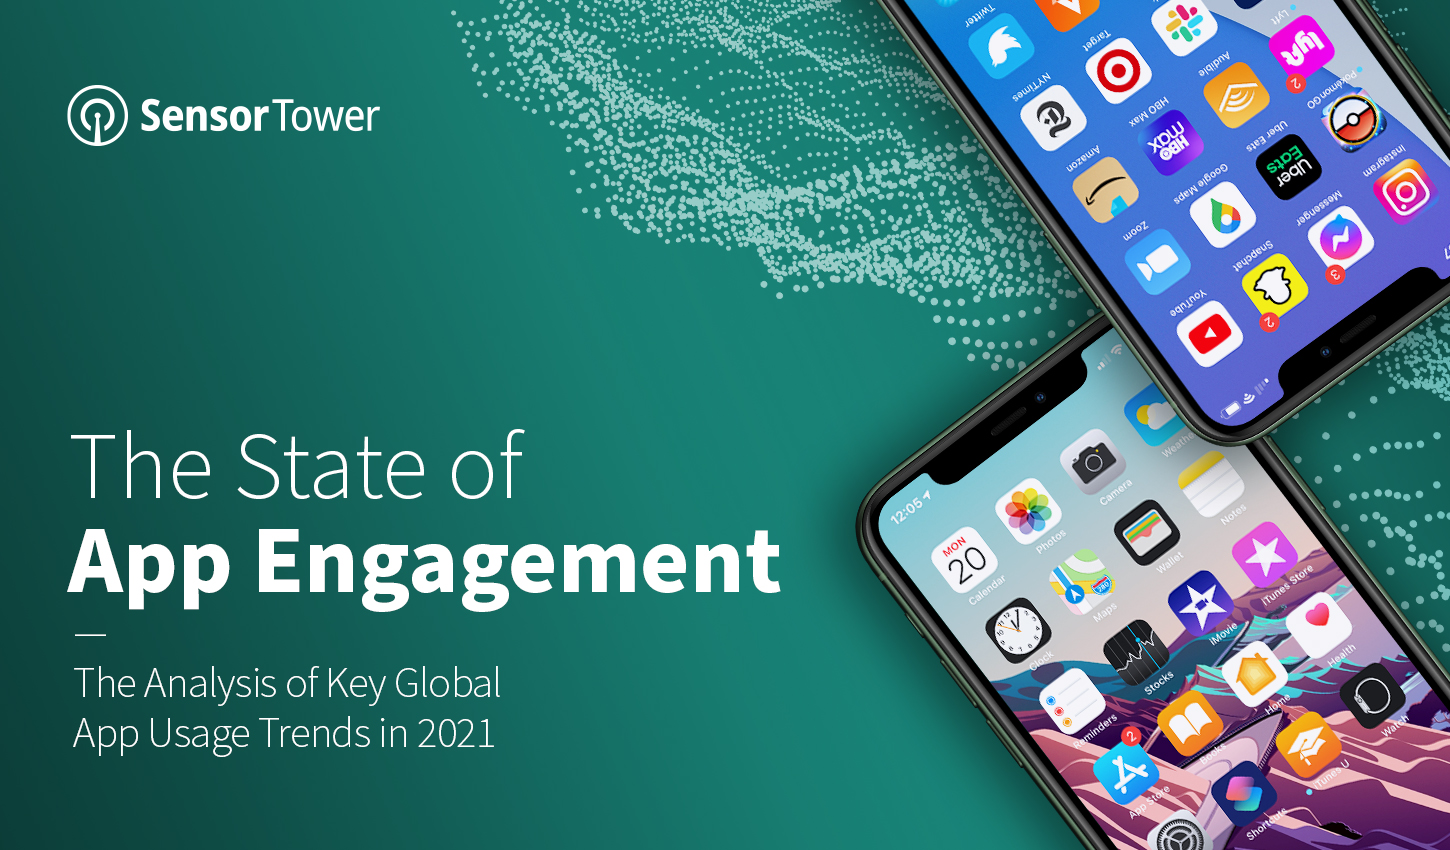 Average Monthly Active Users of the World's Top 500 Apps Surpassed 90 Million in Q2 -